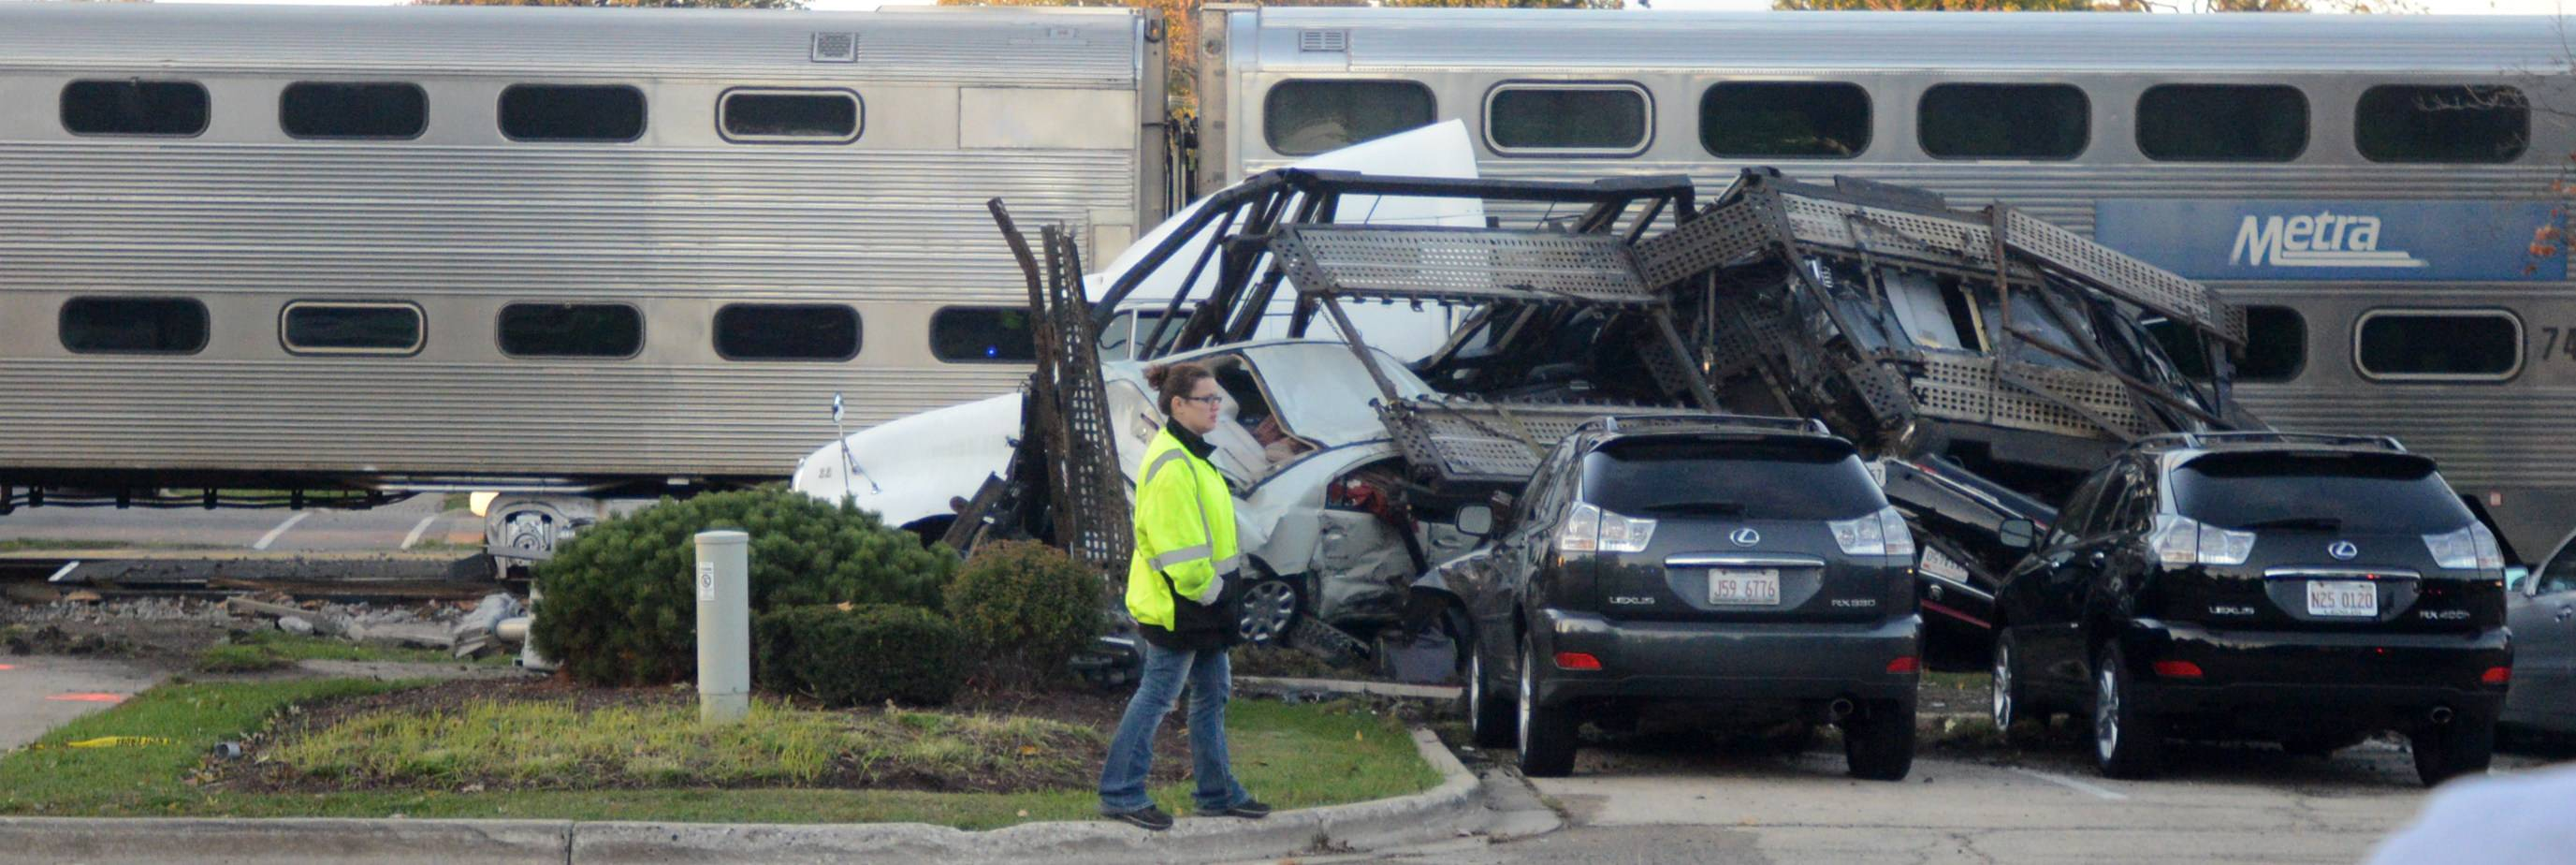 Railroad accidents underscore safety conference's mission